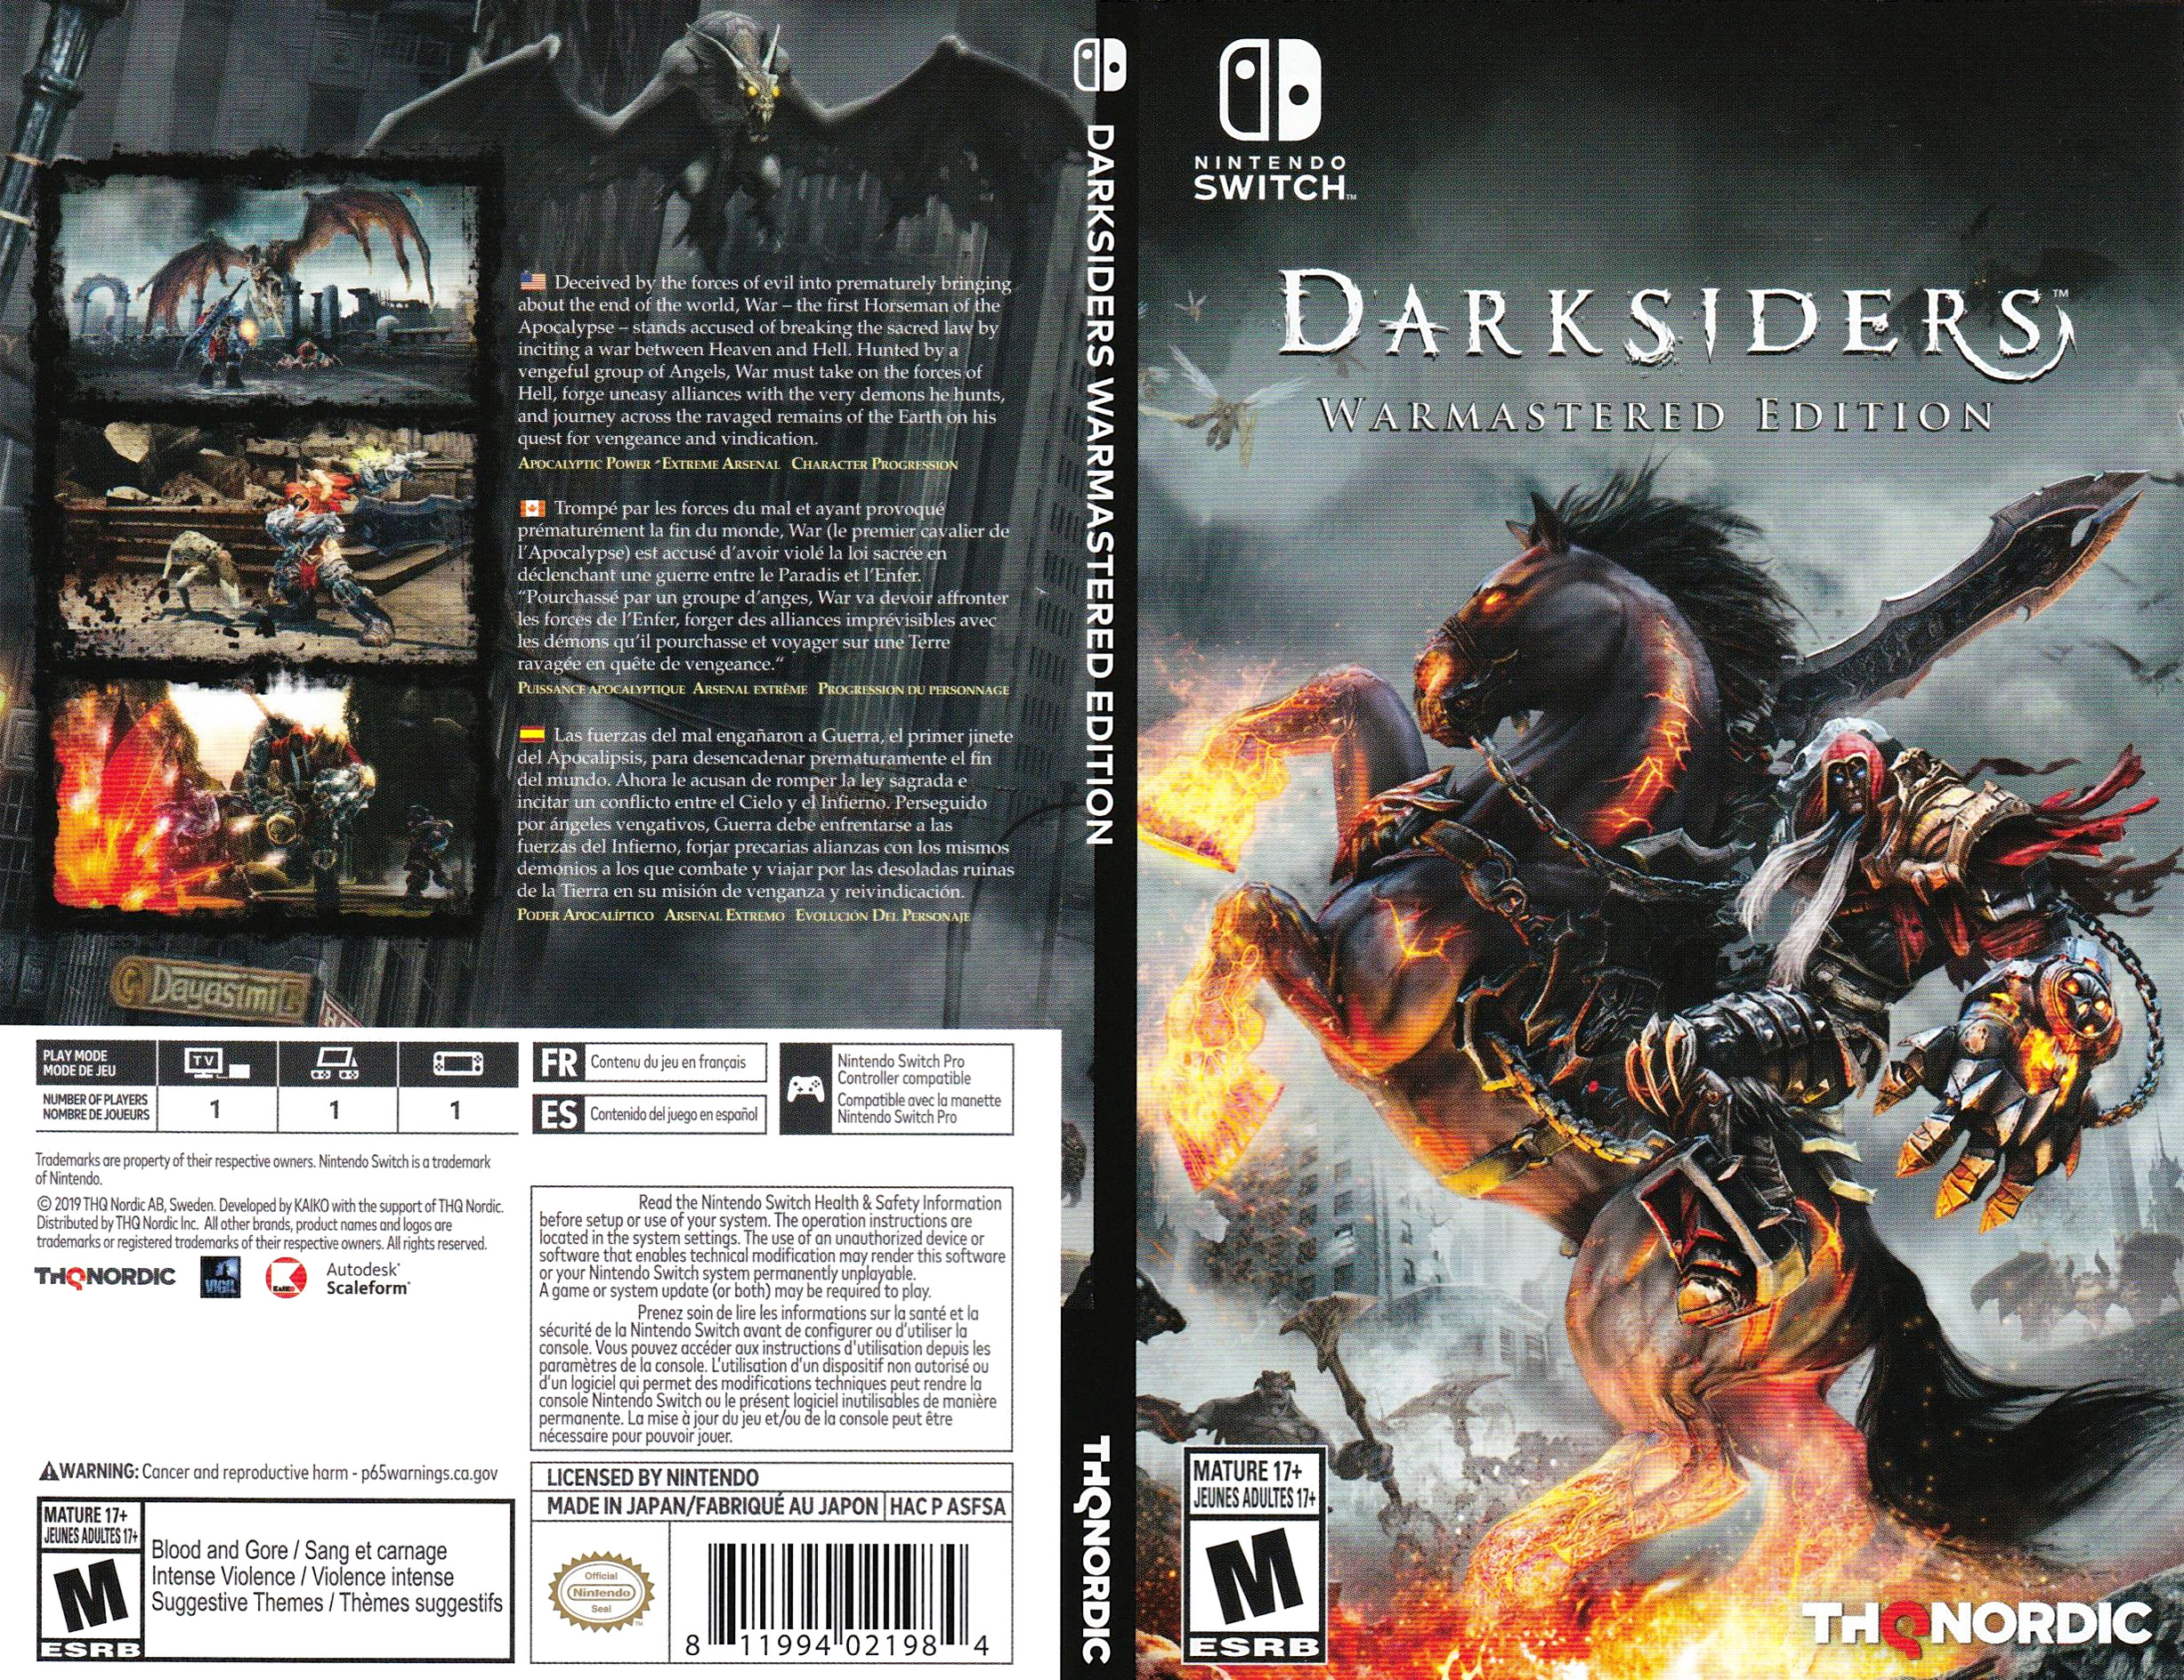 Darksiders - Warmastered Edition Switch coverfullHQB (ASFSA)